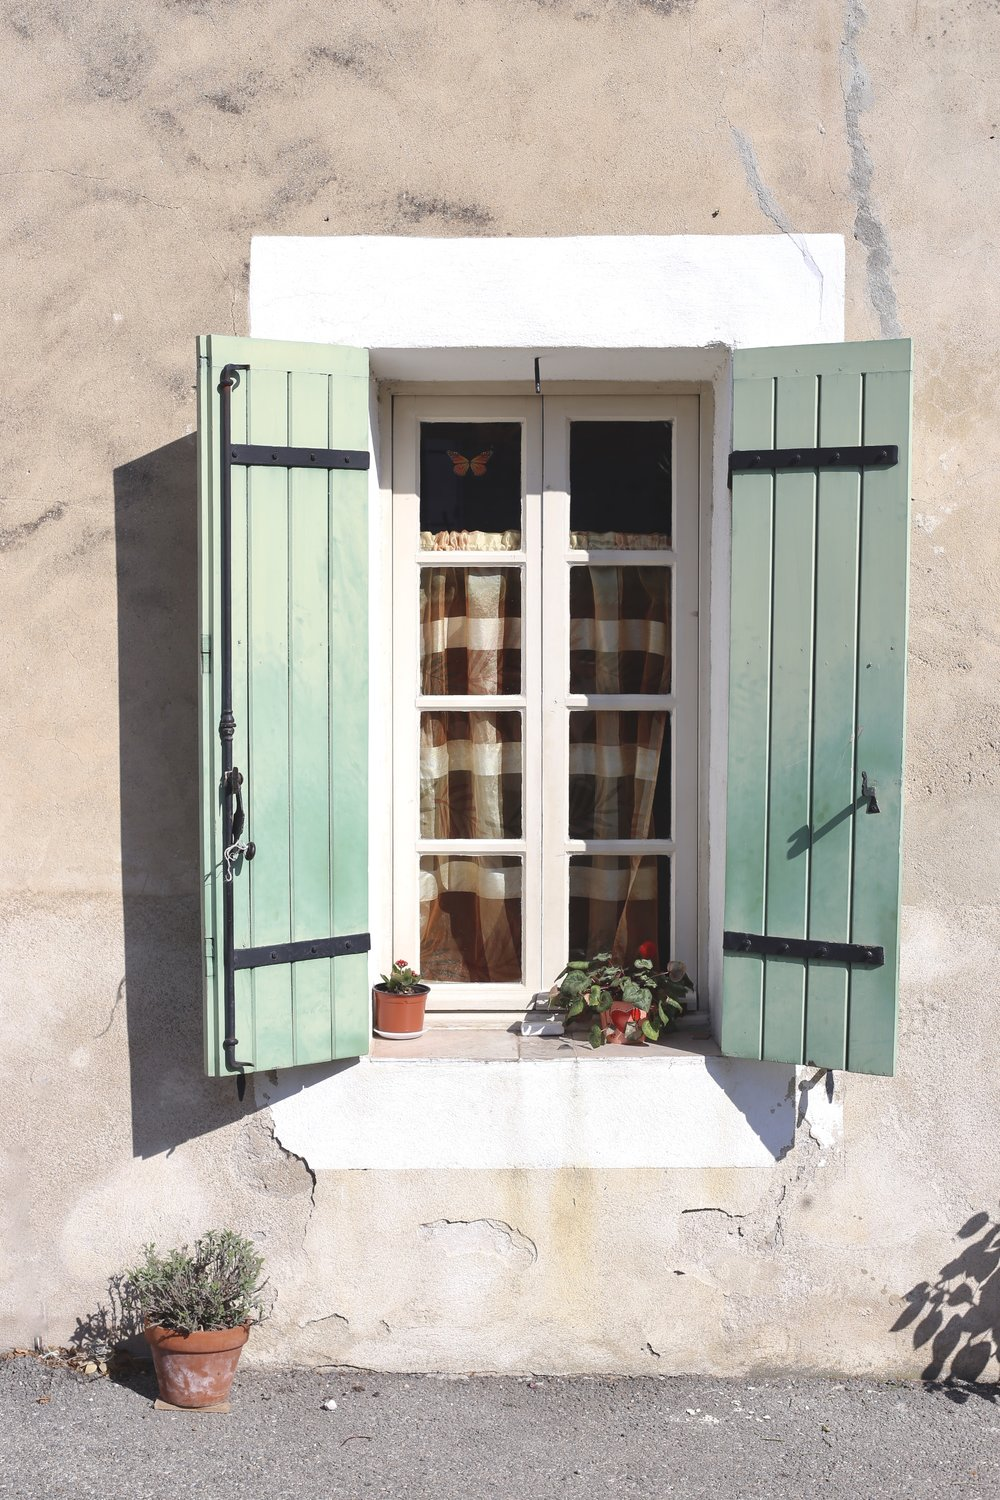 A mint shuttered window with flowerpots in Provence, in the sun.